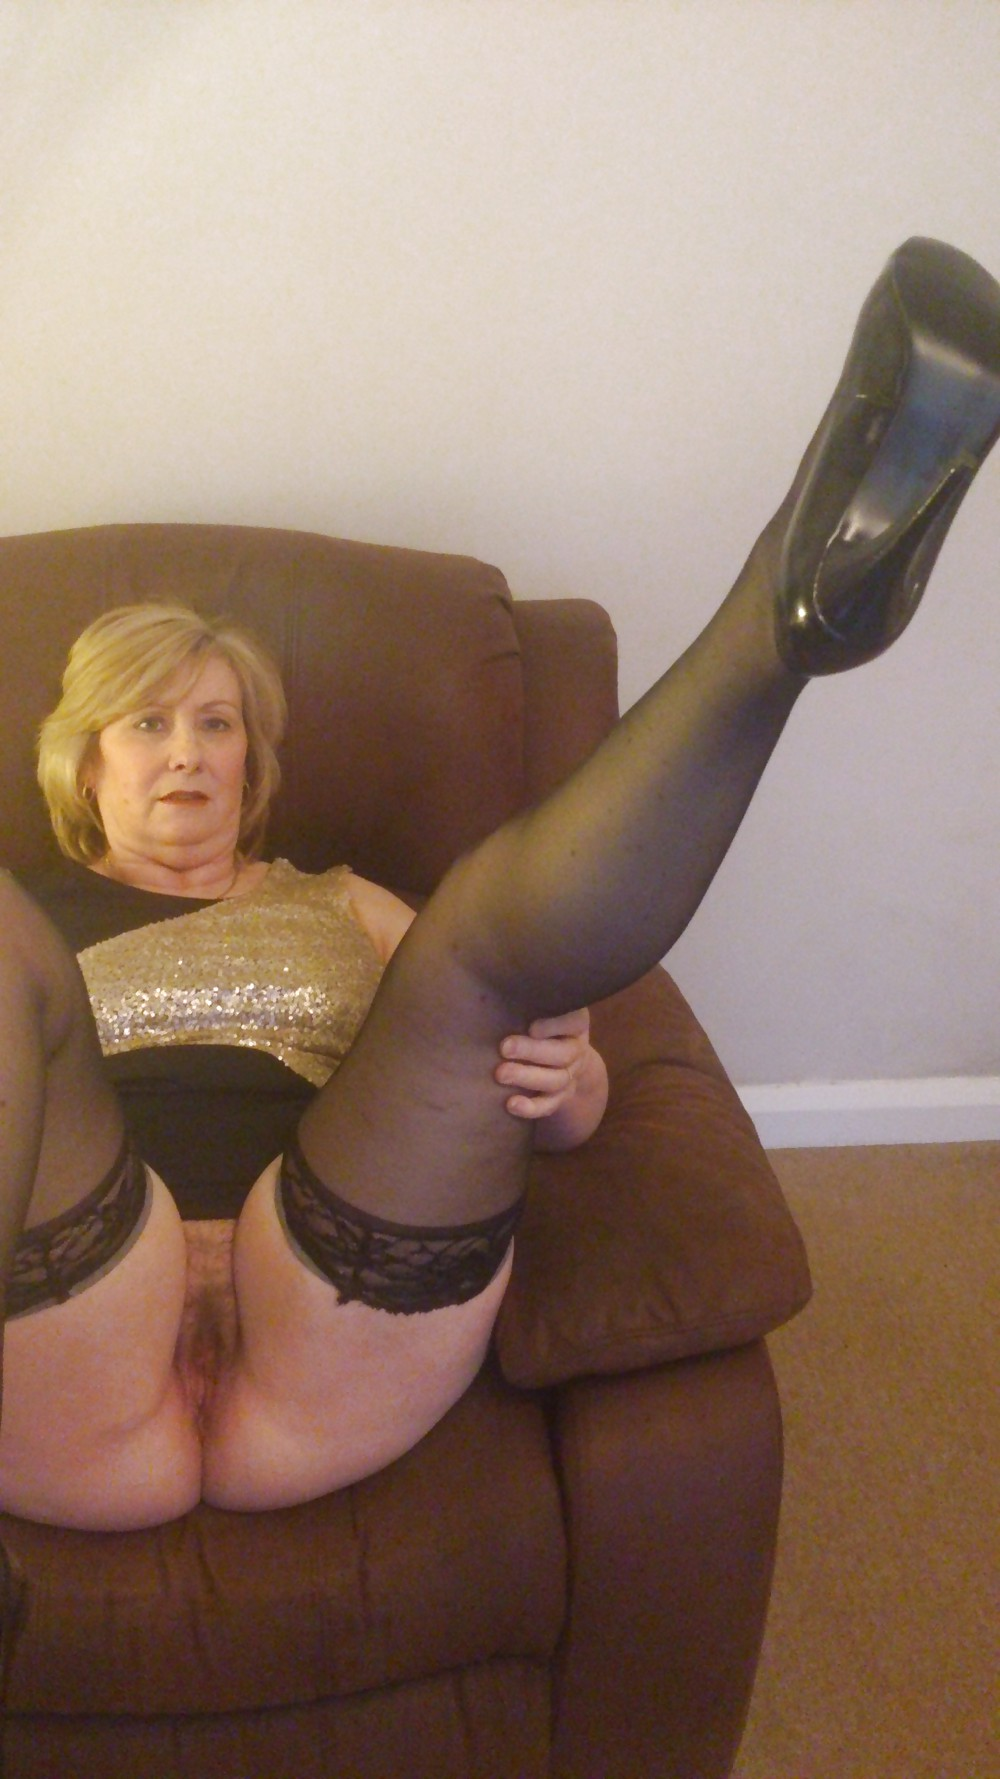 hot mature milf granny karen birmingham, uk